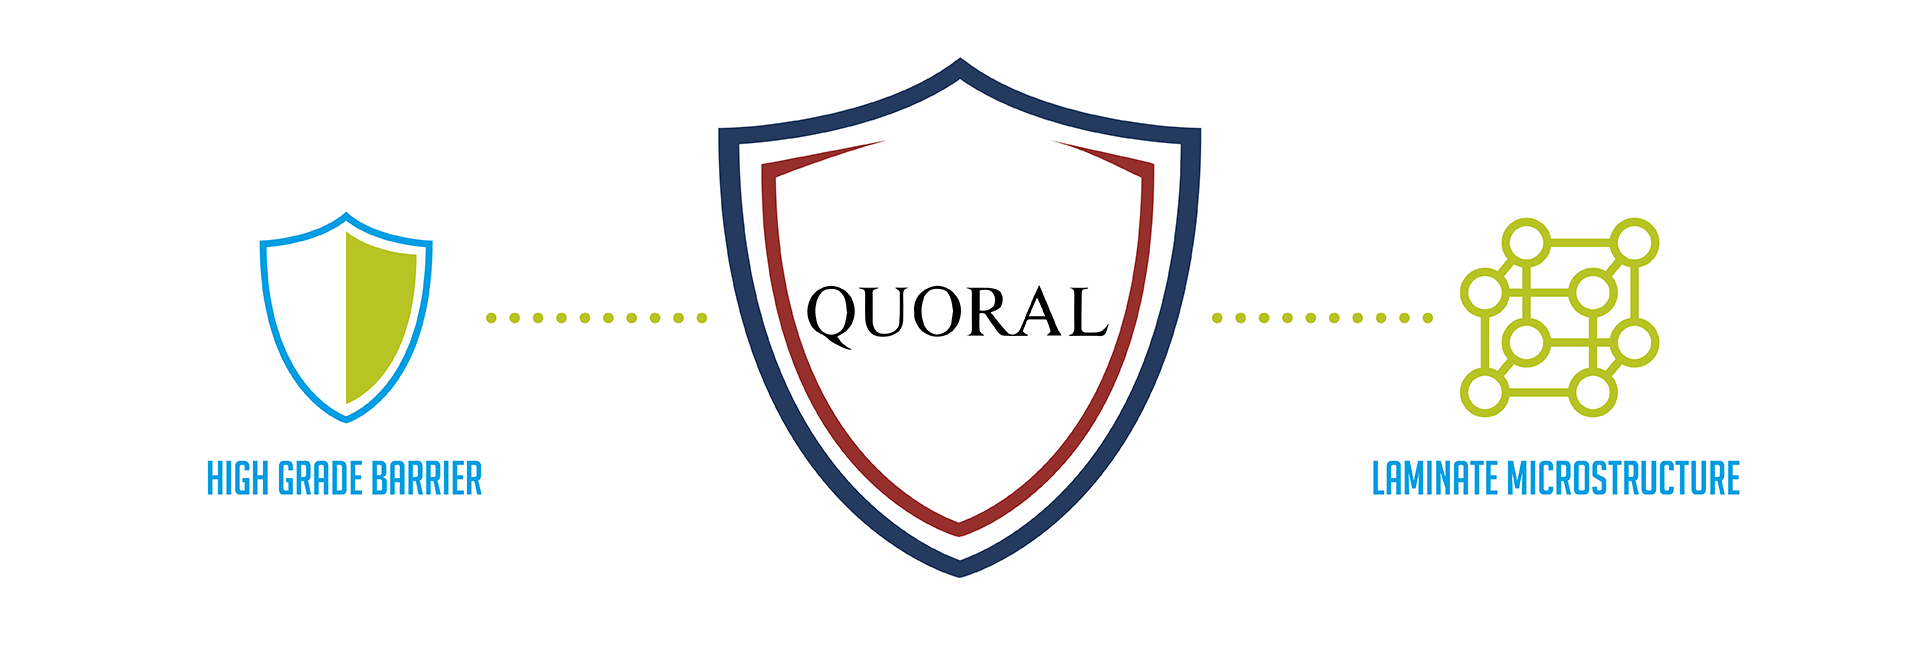 Quoral